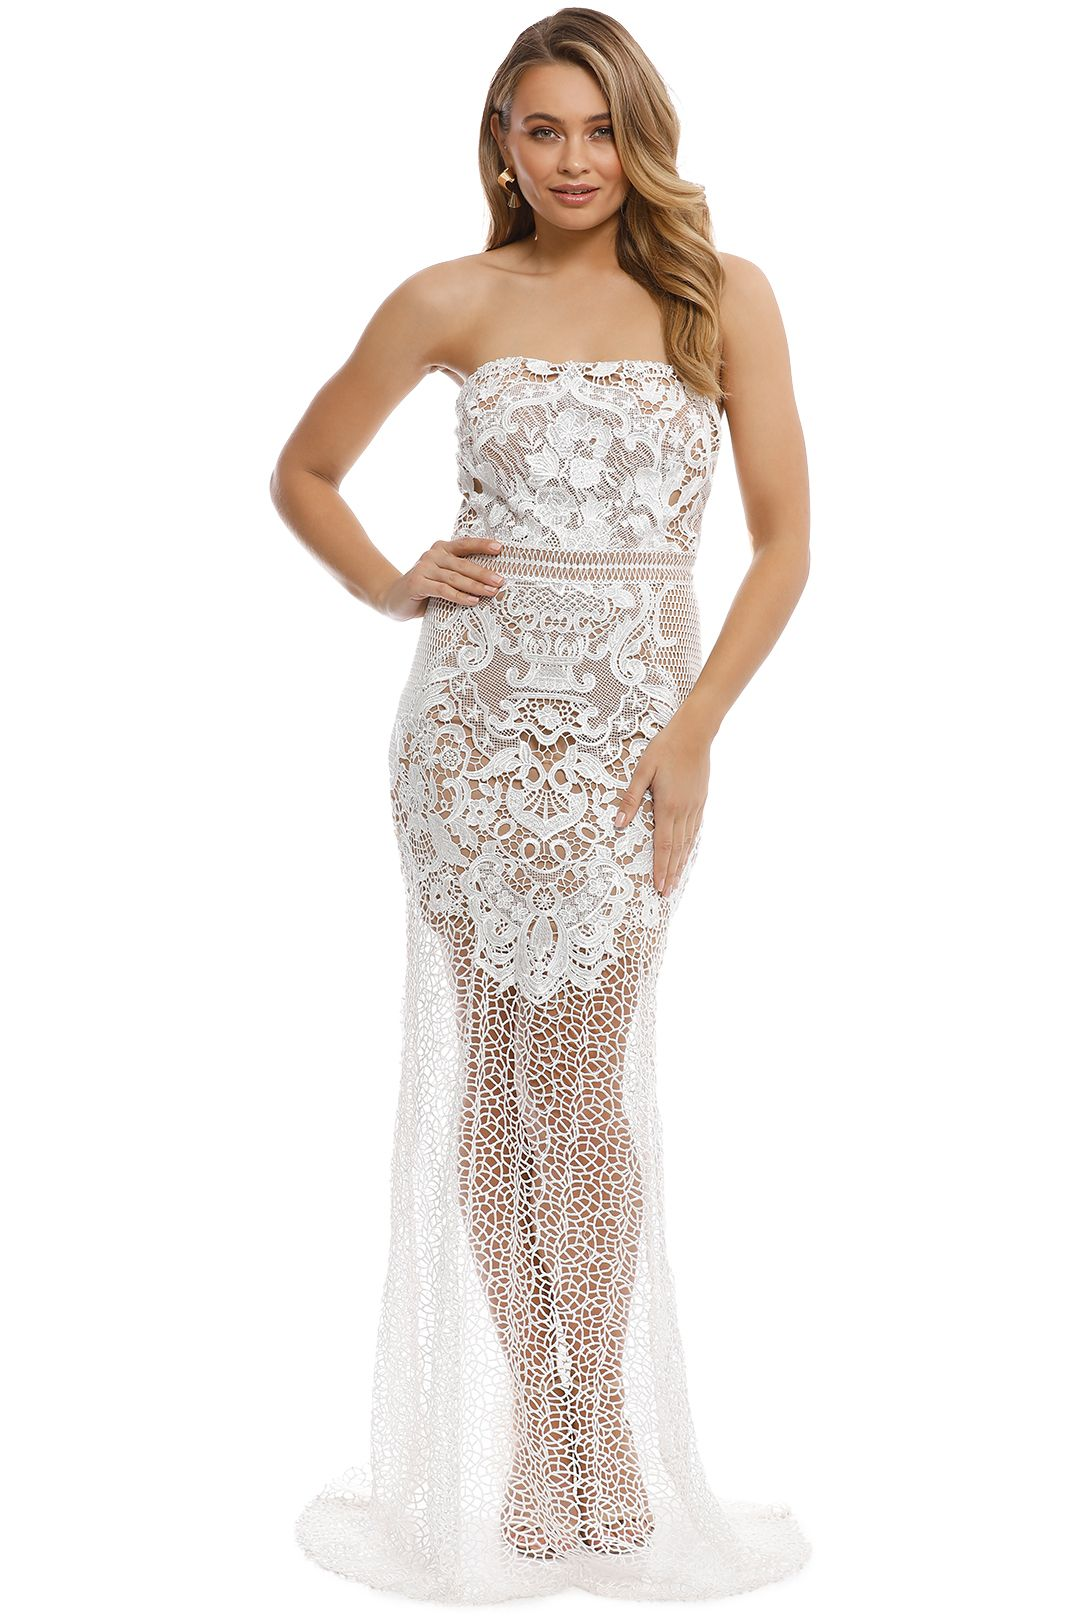 Grace and Hart - Adele Gown - White - Front